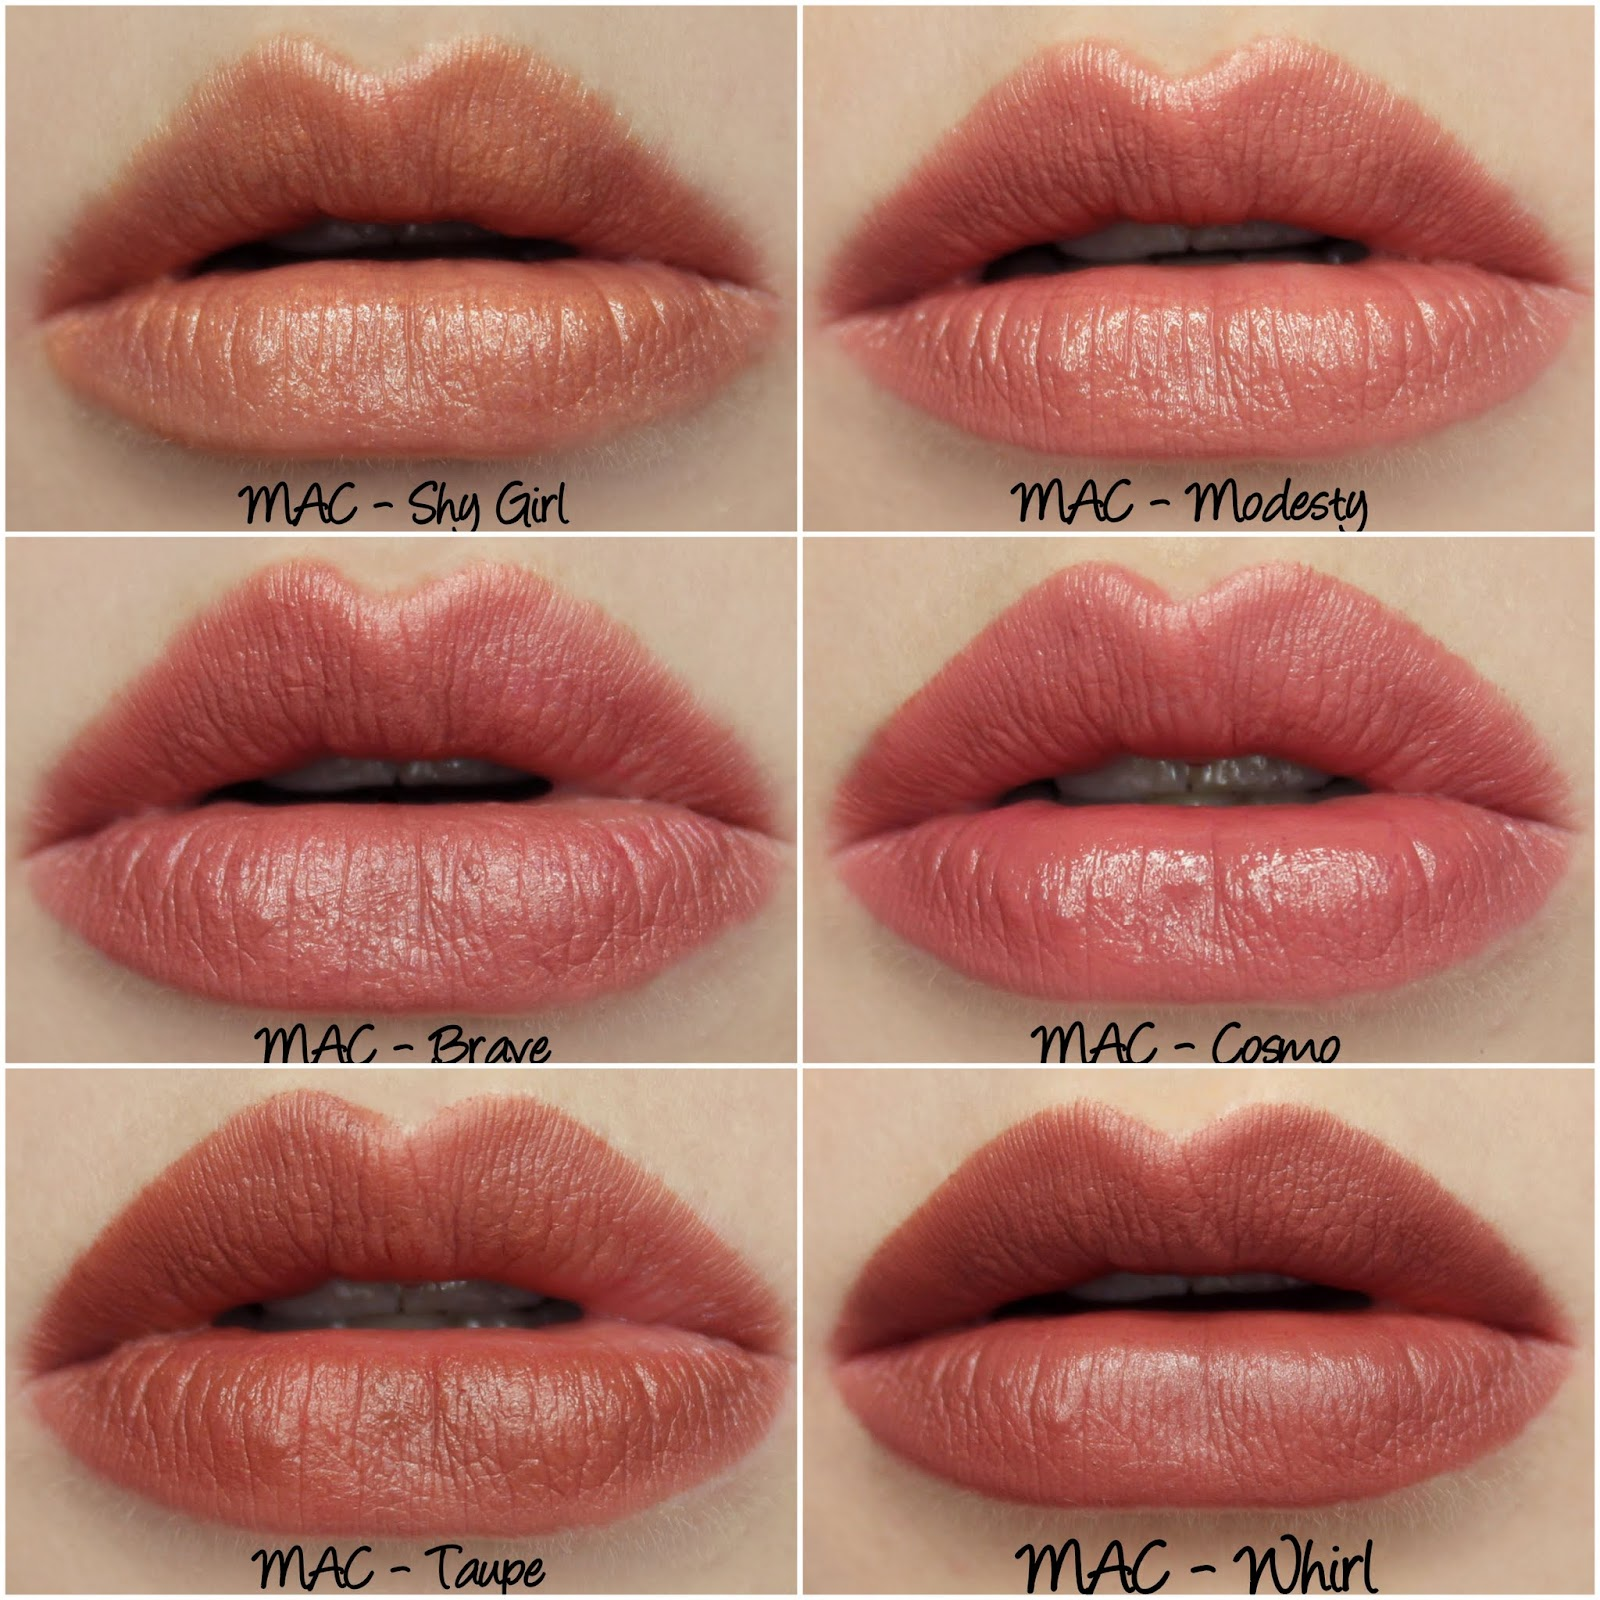 Popolare MAC Permanent Nude & Neutral Lipstick Swatches & Review Part Two  EA71